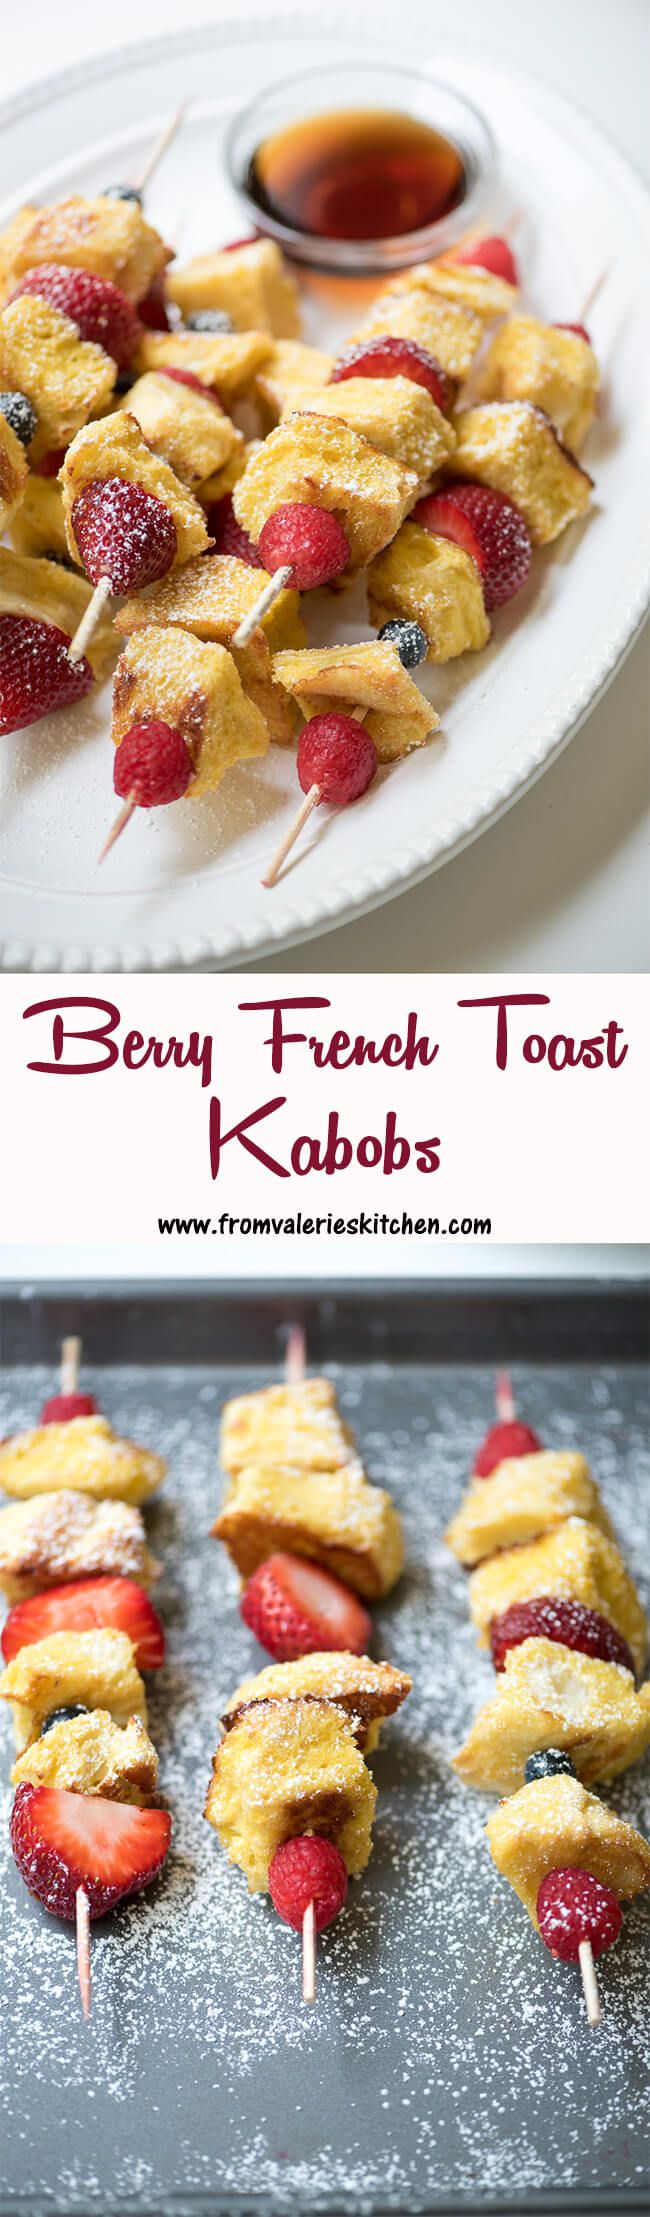 Simple French Toast Recipe Kids